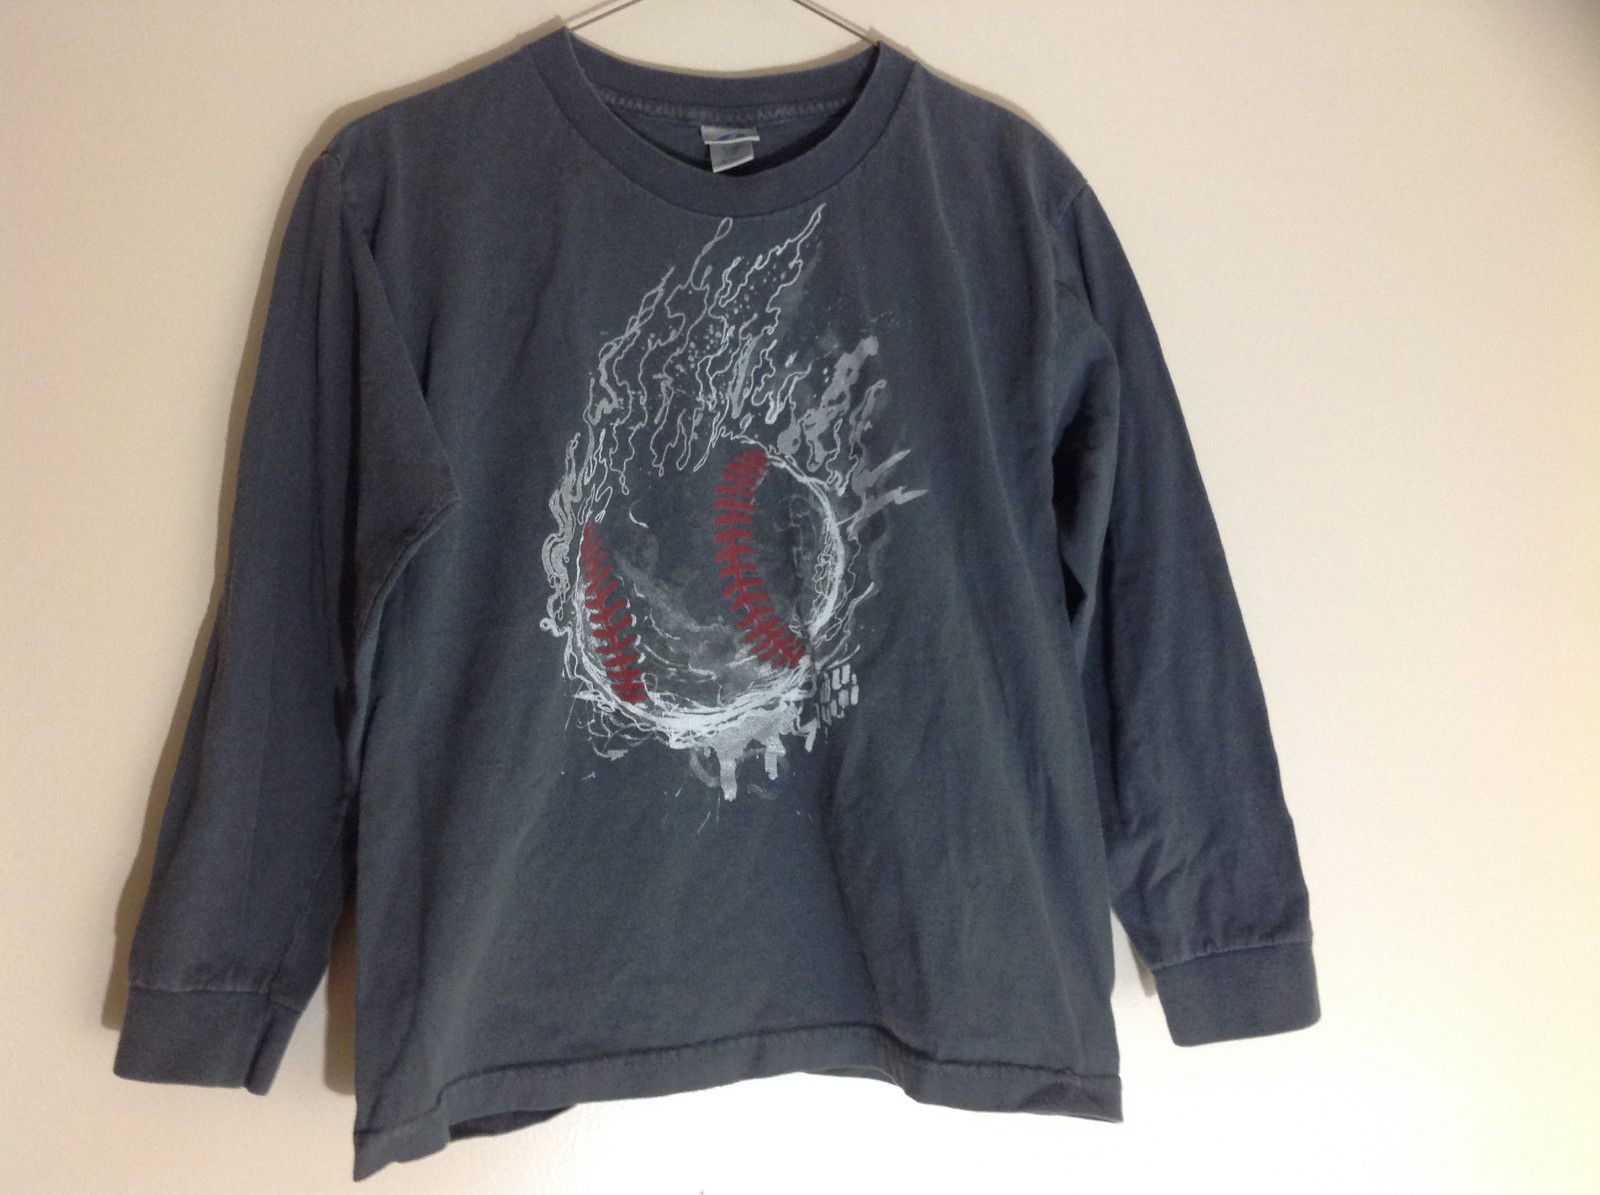 Prospirit Gray Baseball Graphic Long Sleeve Shirt Size 8 to 10